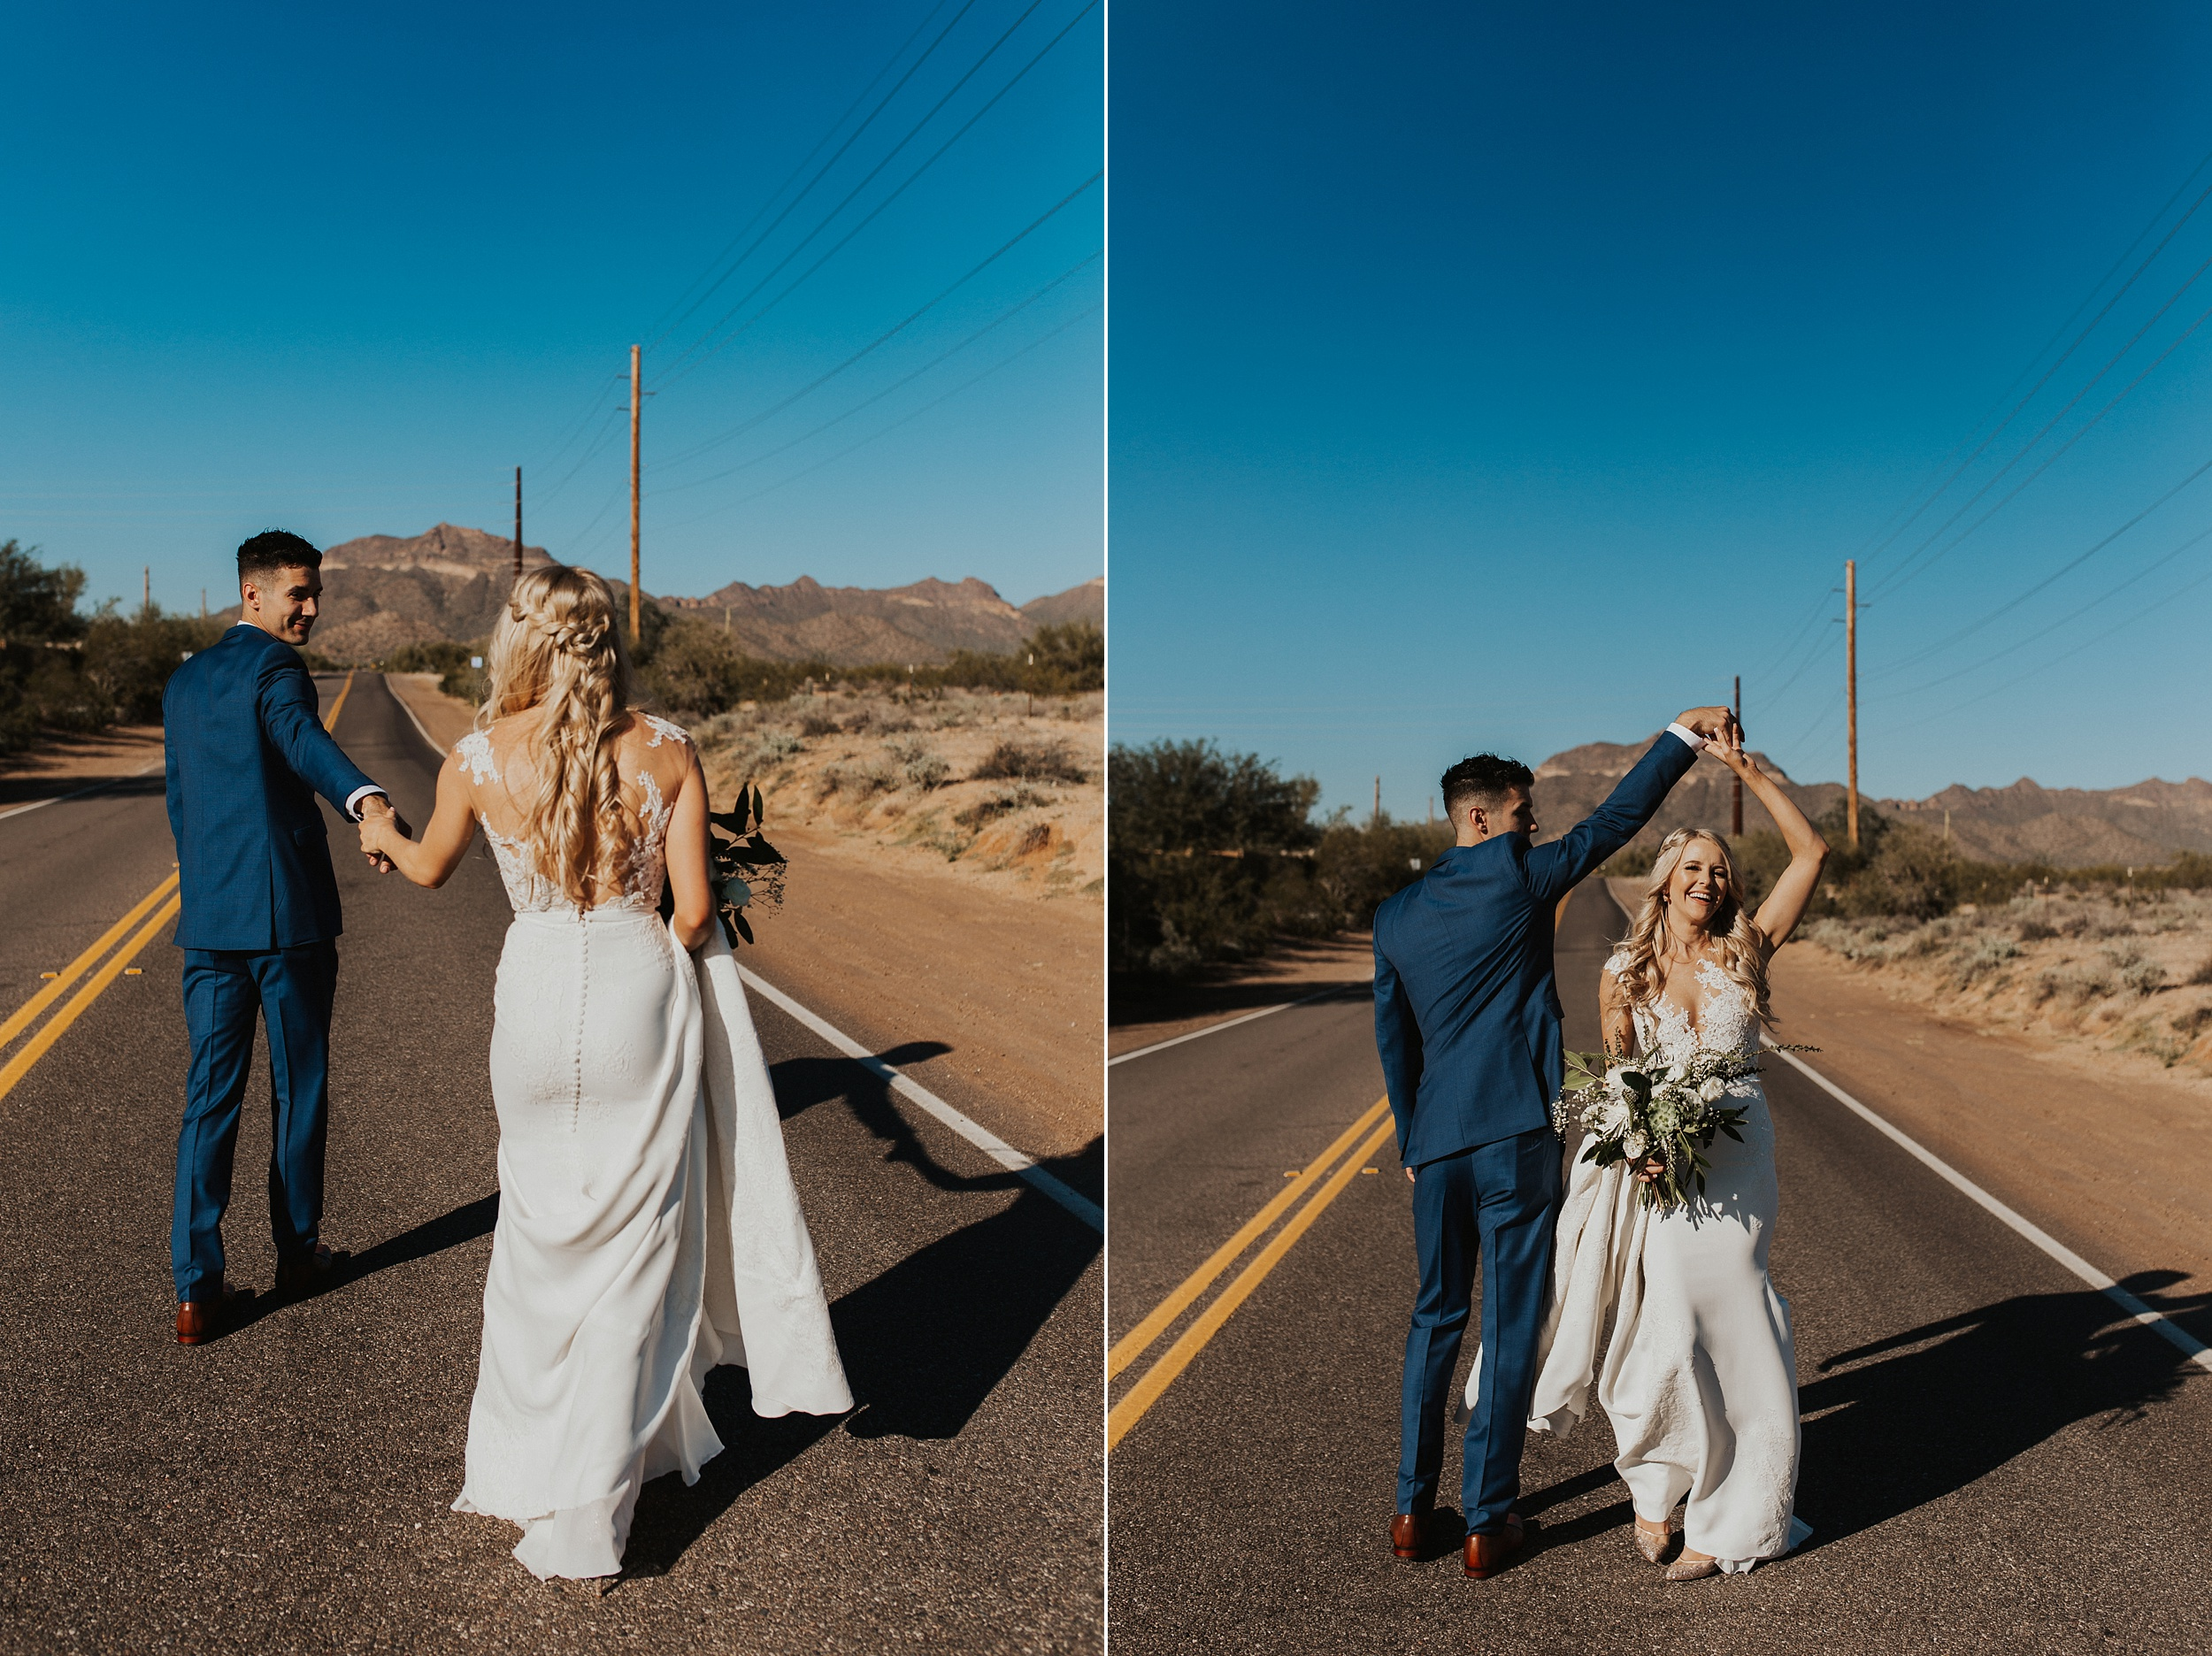 Meg+Bubba_Wedding_Bride+Groom_Portraits_Arizona-23.jpg